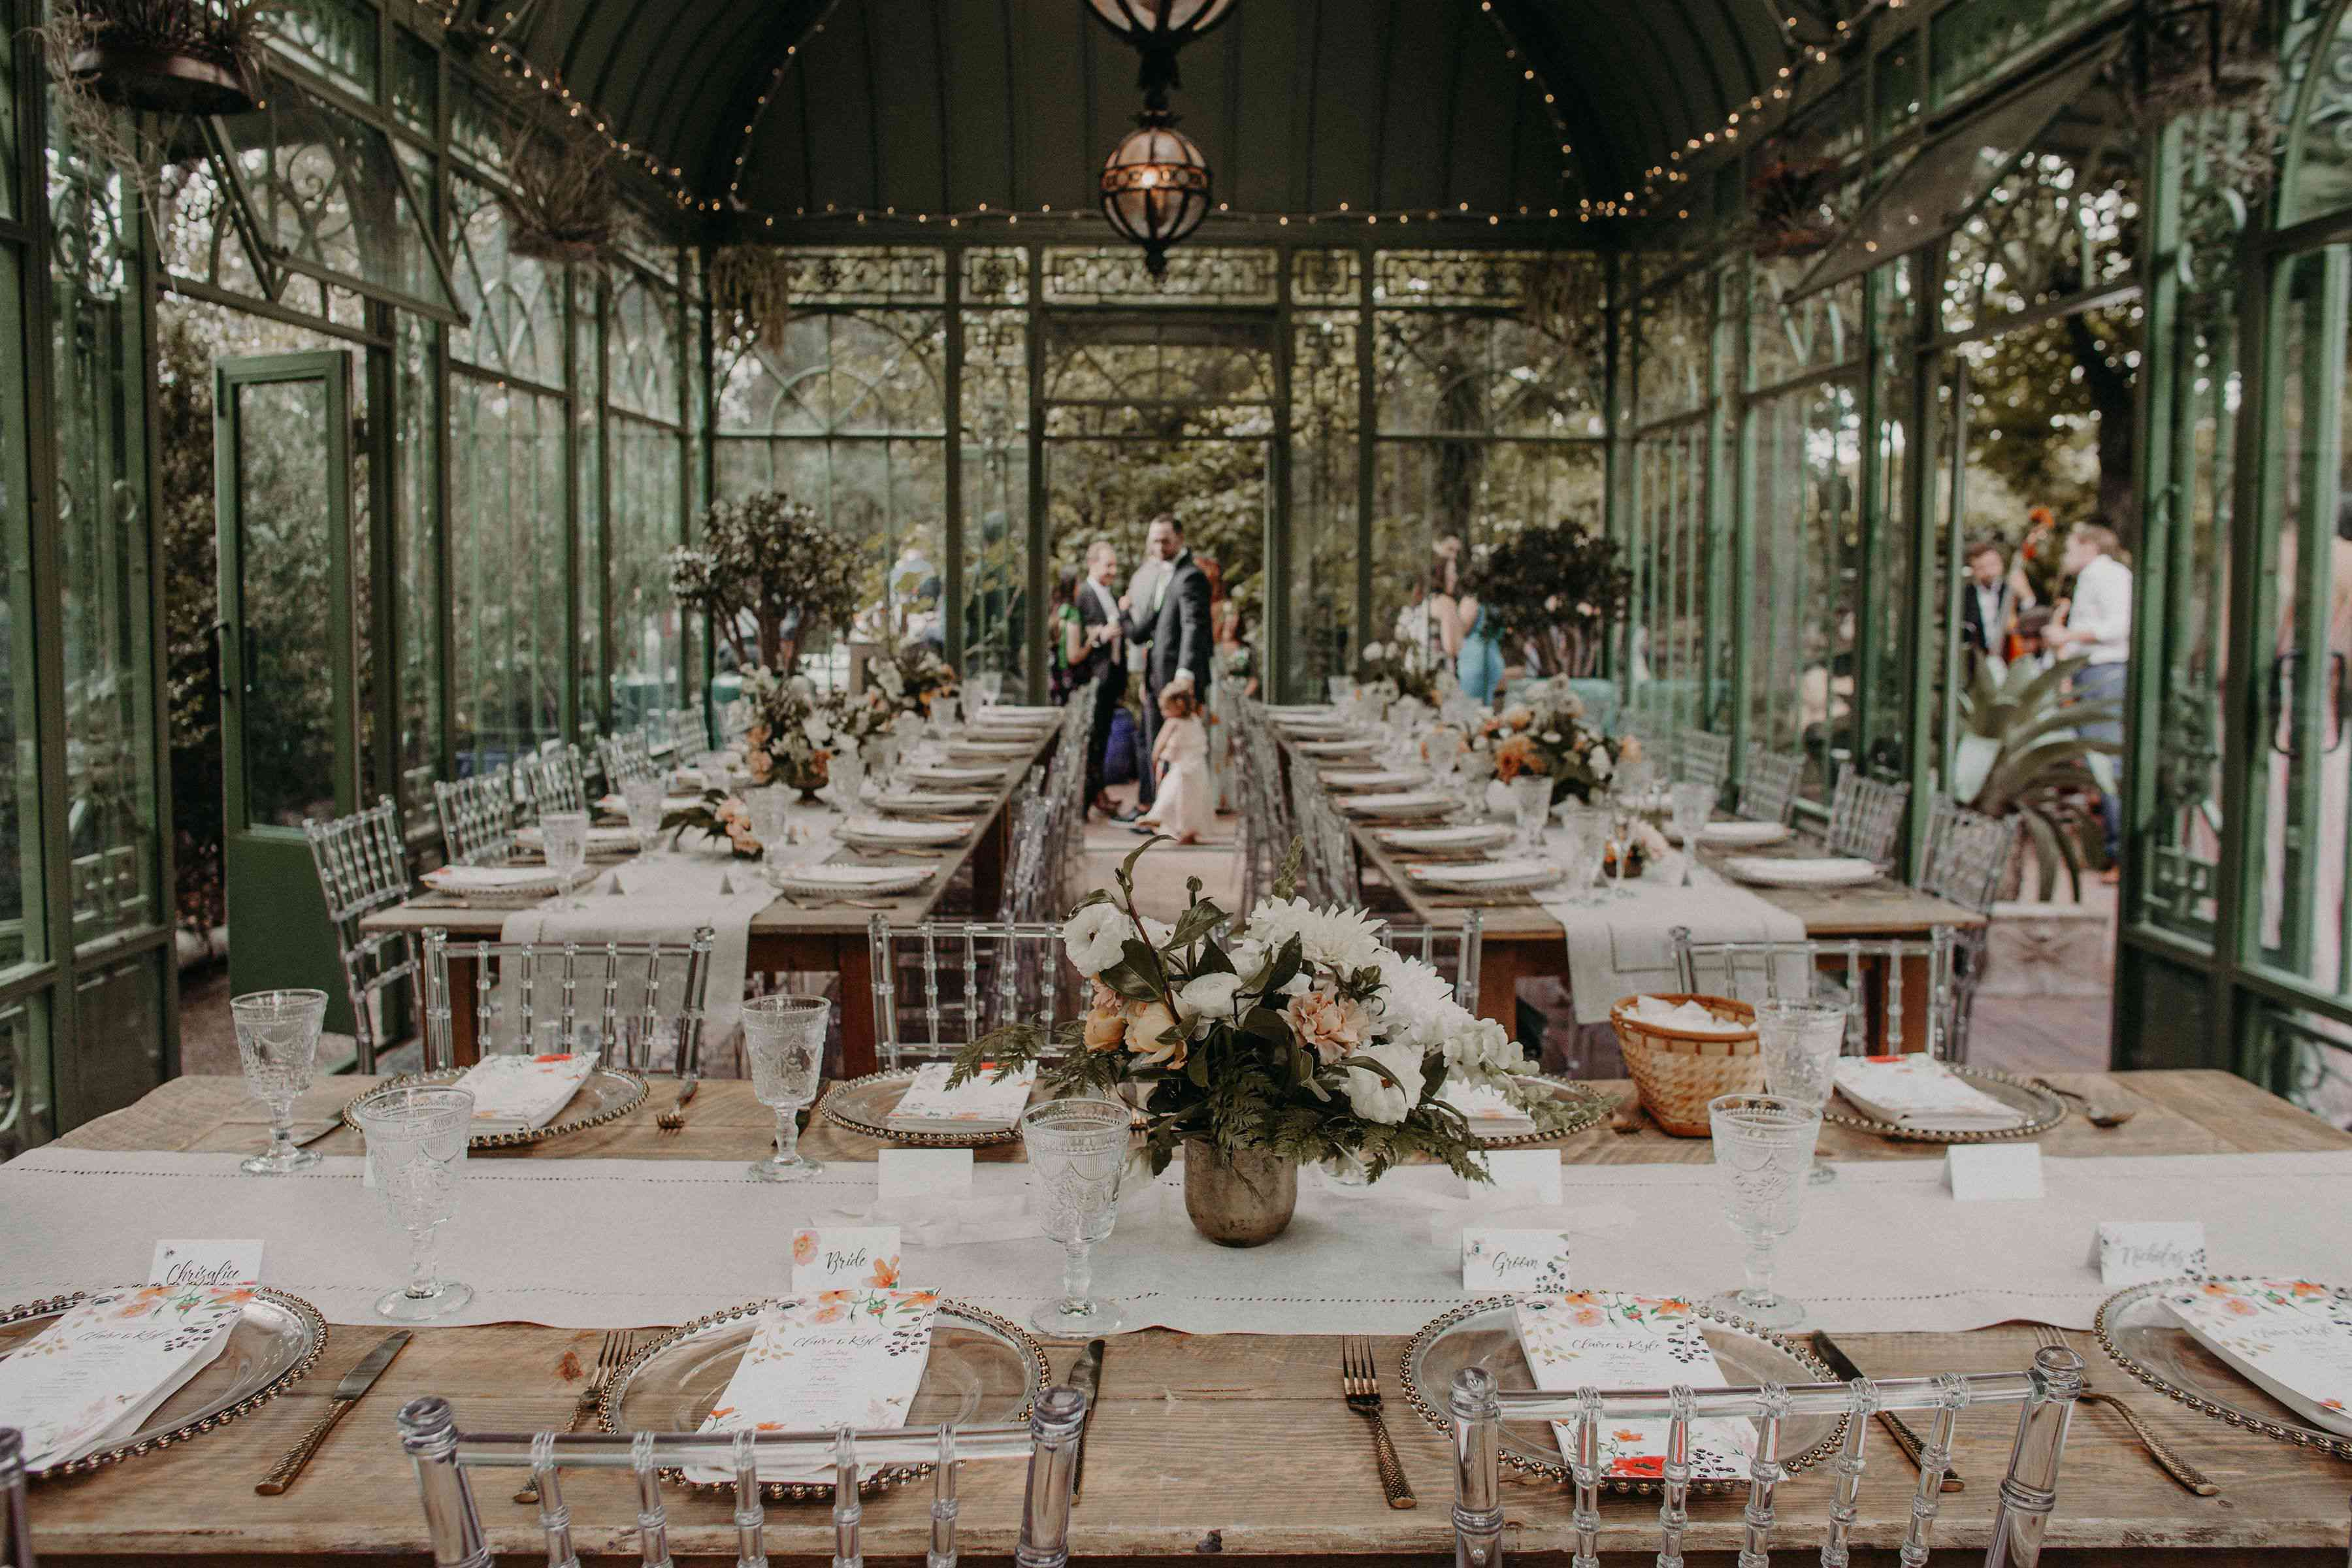 Reception inside a solarium with flowers and twinkle lights